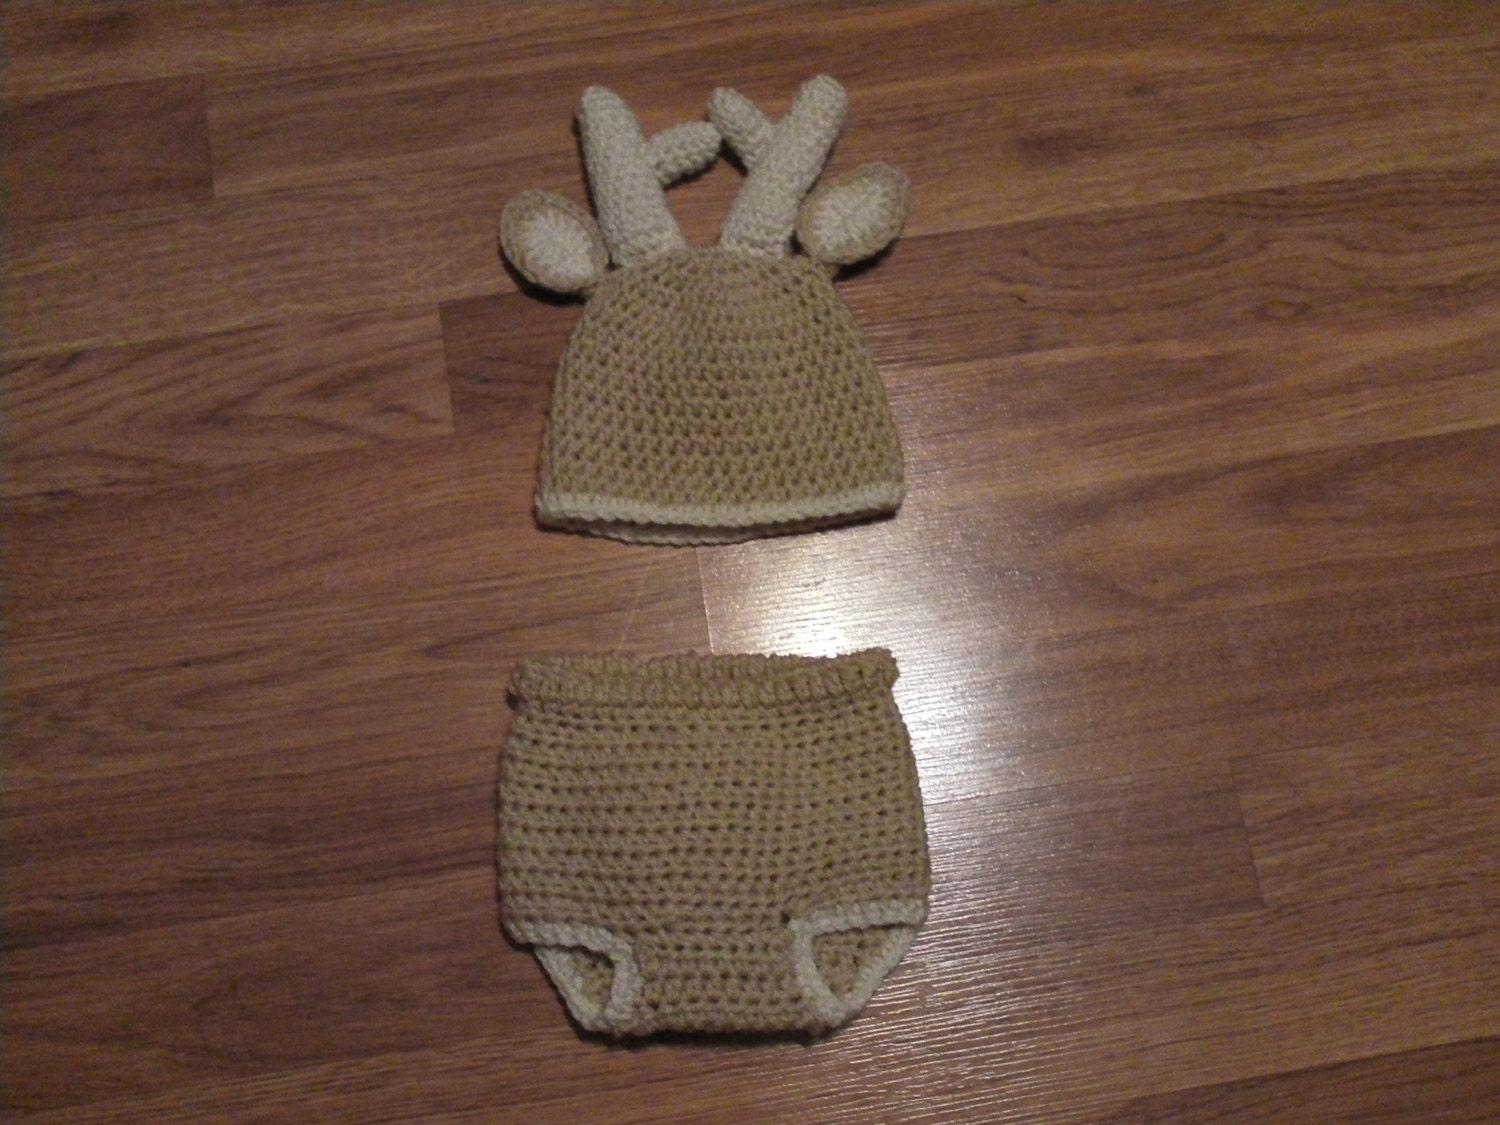 Free Crochet Deer Diaper Cover Pattern : Crochet Deer Hat/Diaper Cover Set by HookAwayCrochet on Etsy